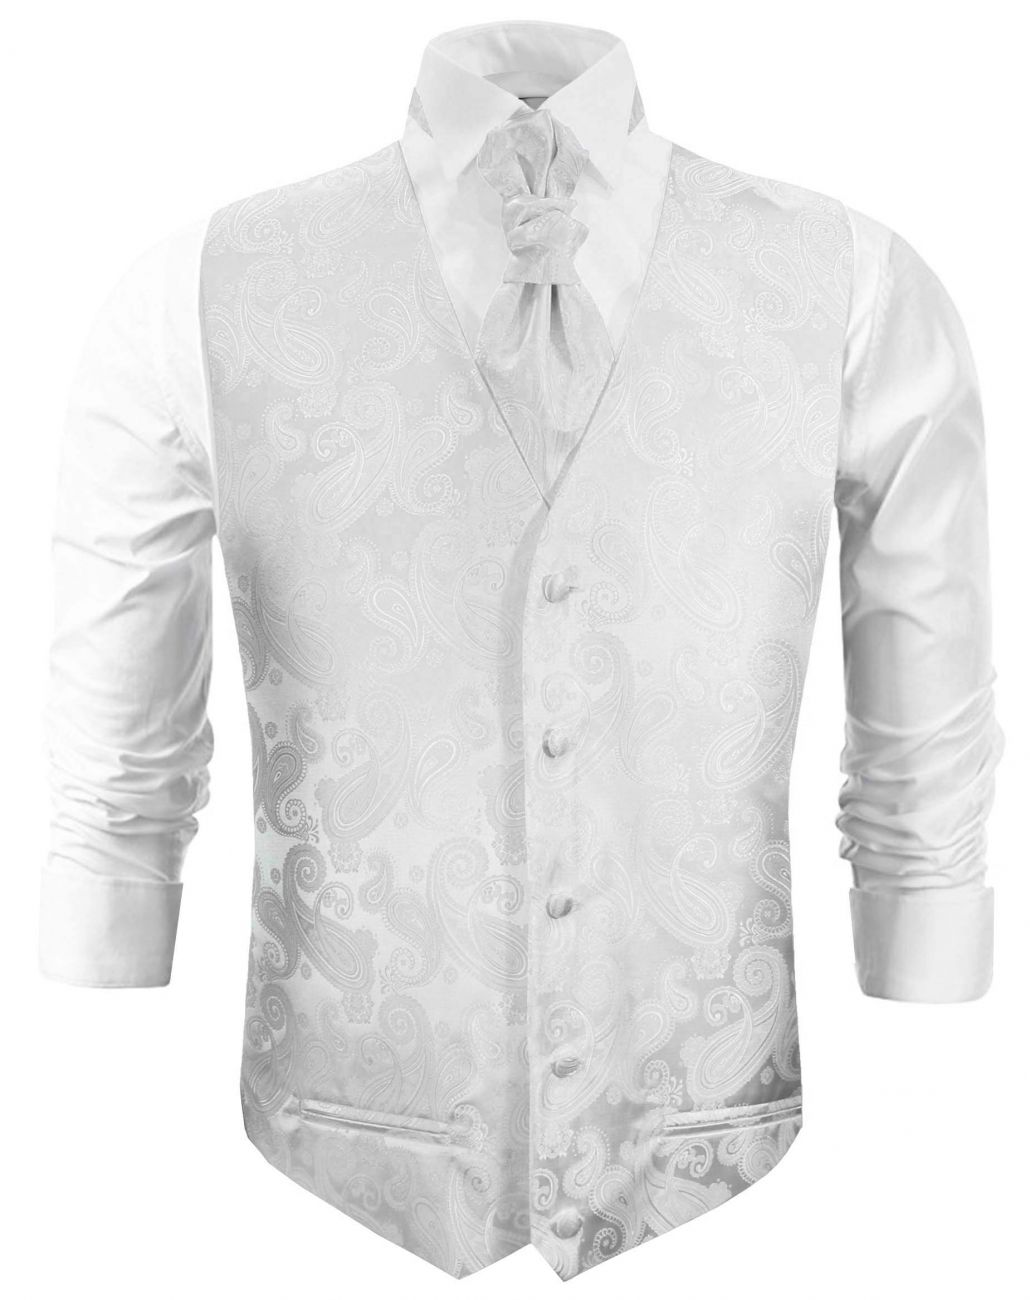 White paisley wedding vest waistcoat with cravat